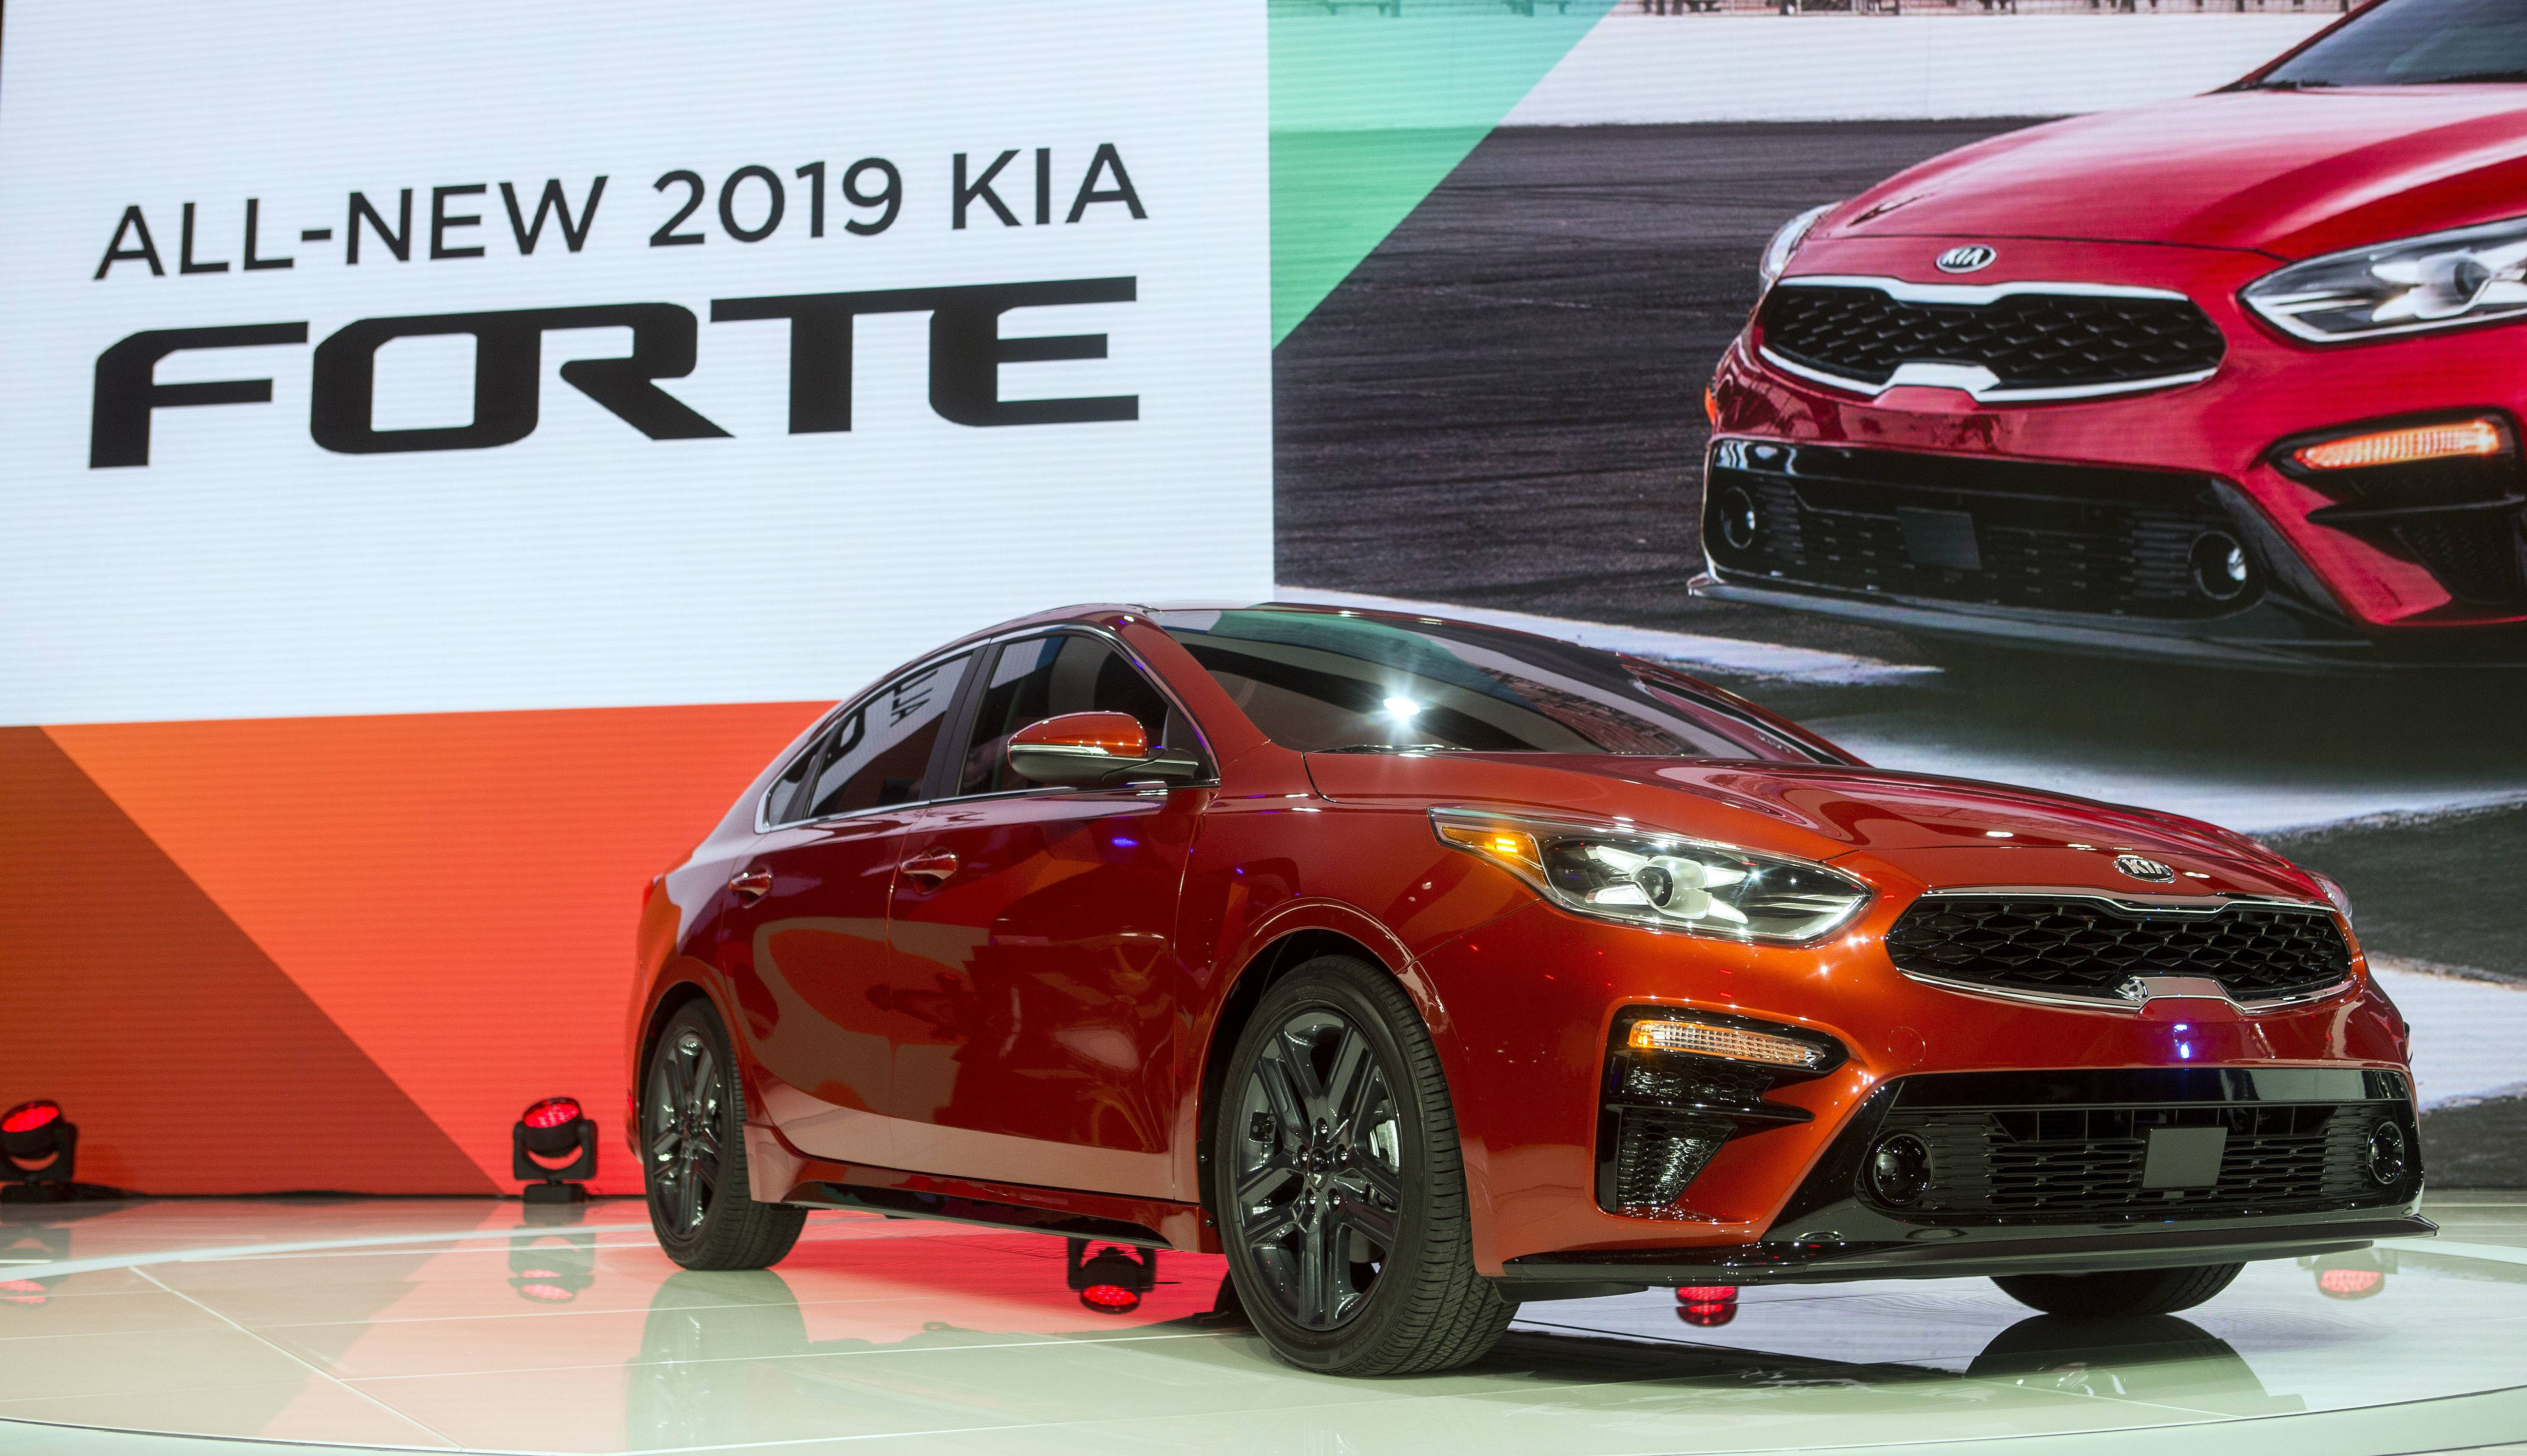 The 2019 Kia Forte sedan is presented at the North American International Auto Show.